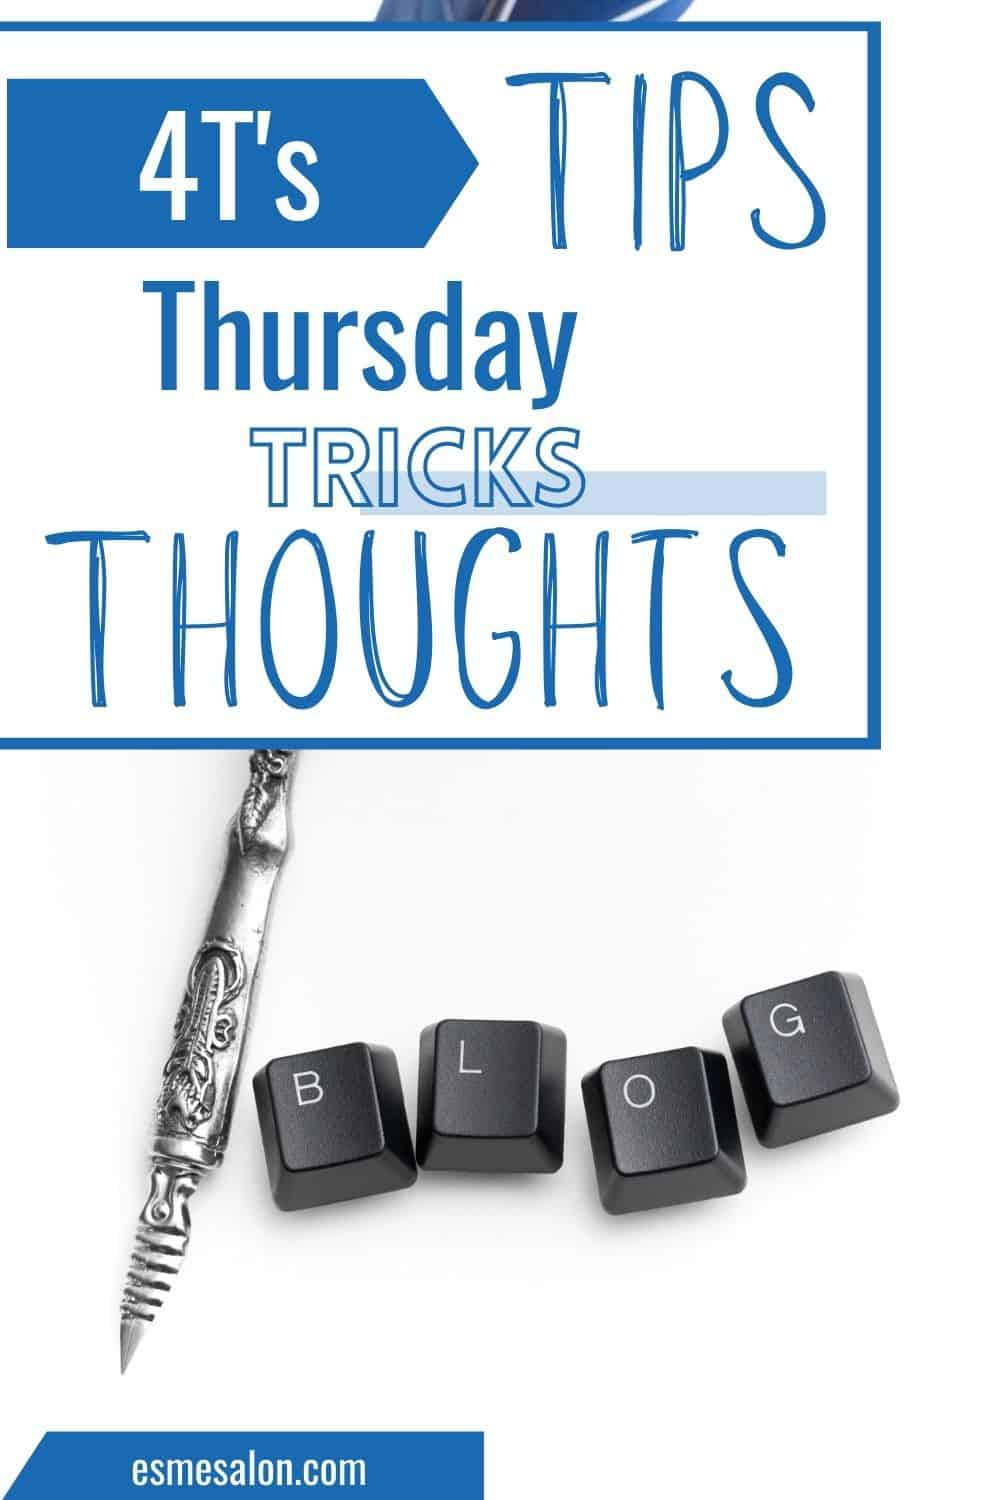 A pen with Keyboard keys 4 Thursday Tips Tricks and Thoughts